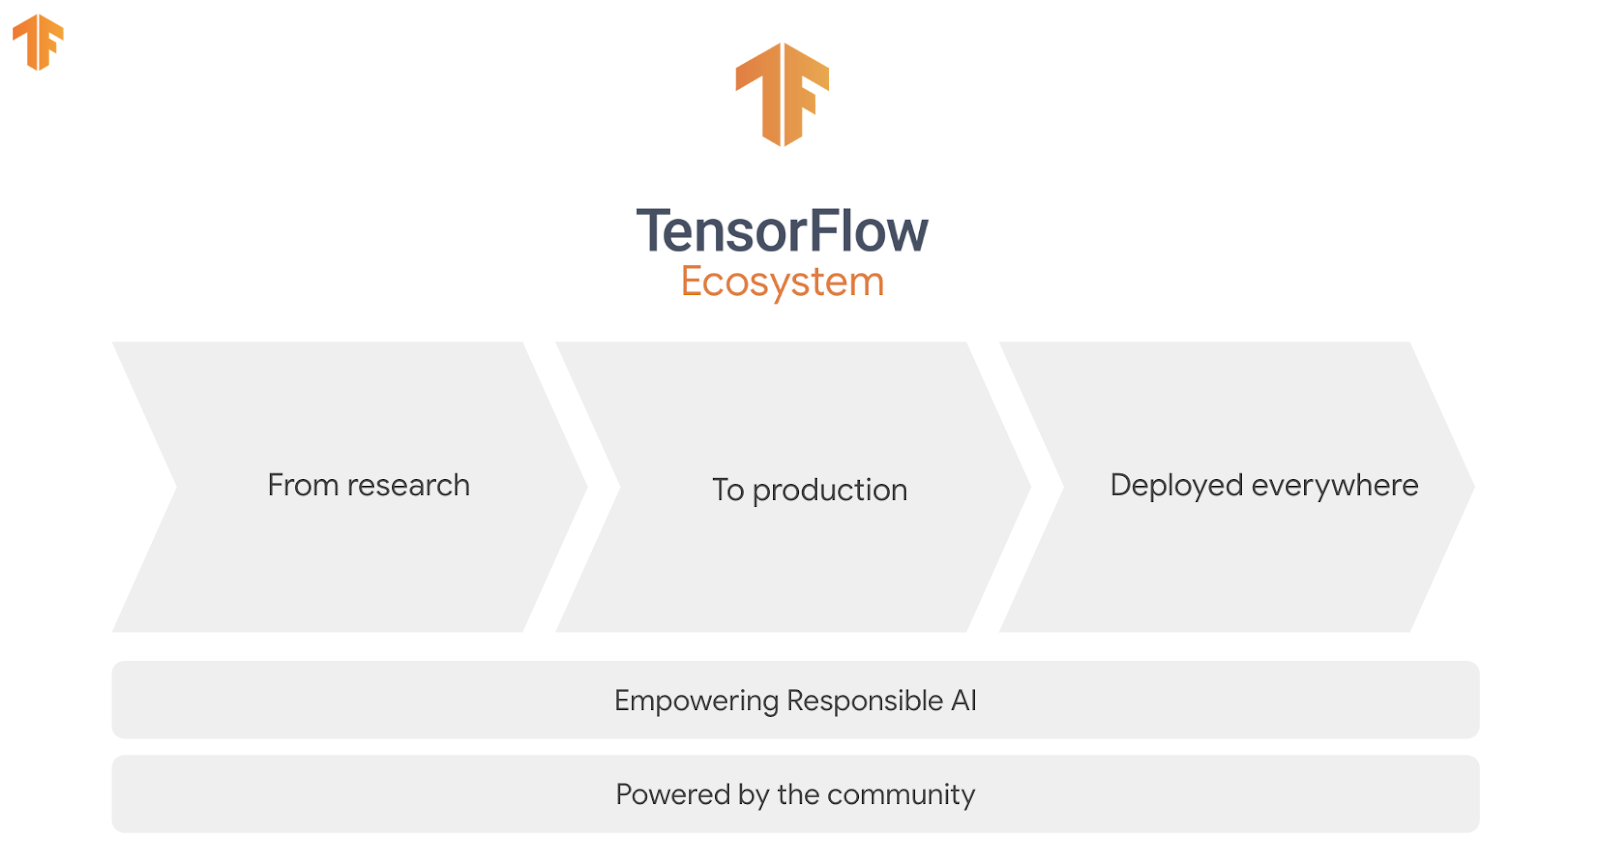 Recap of the 2020 TensorFlow Dev Summit